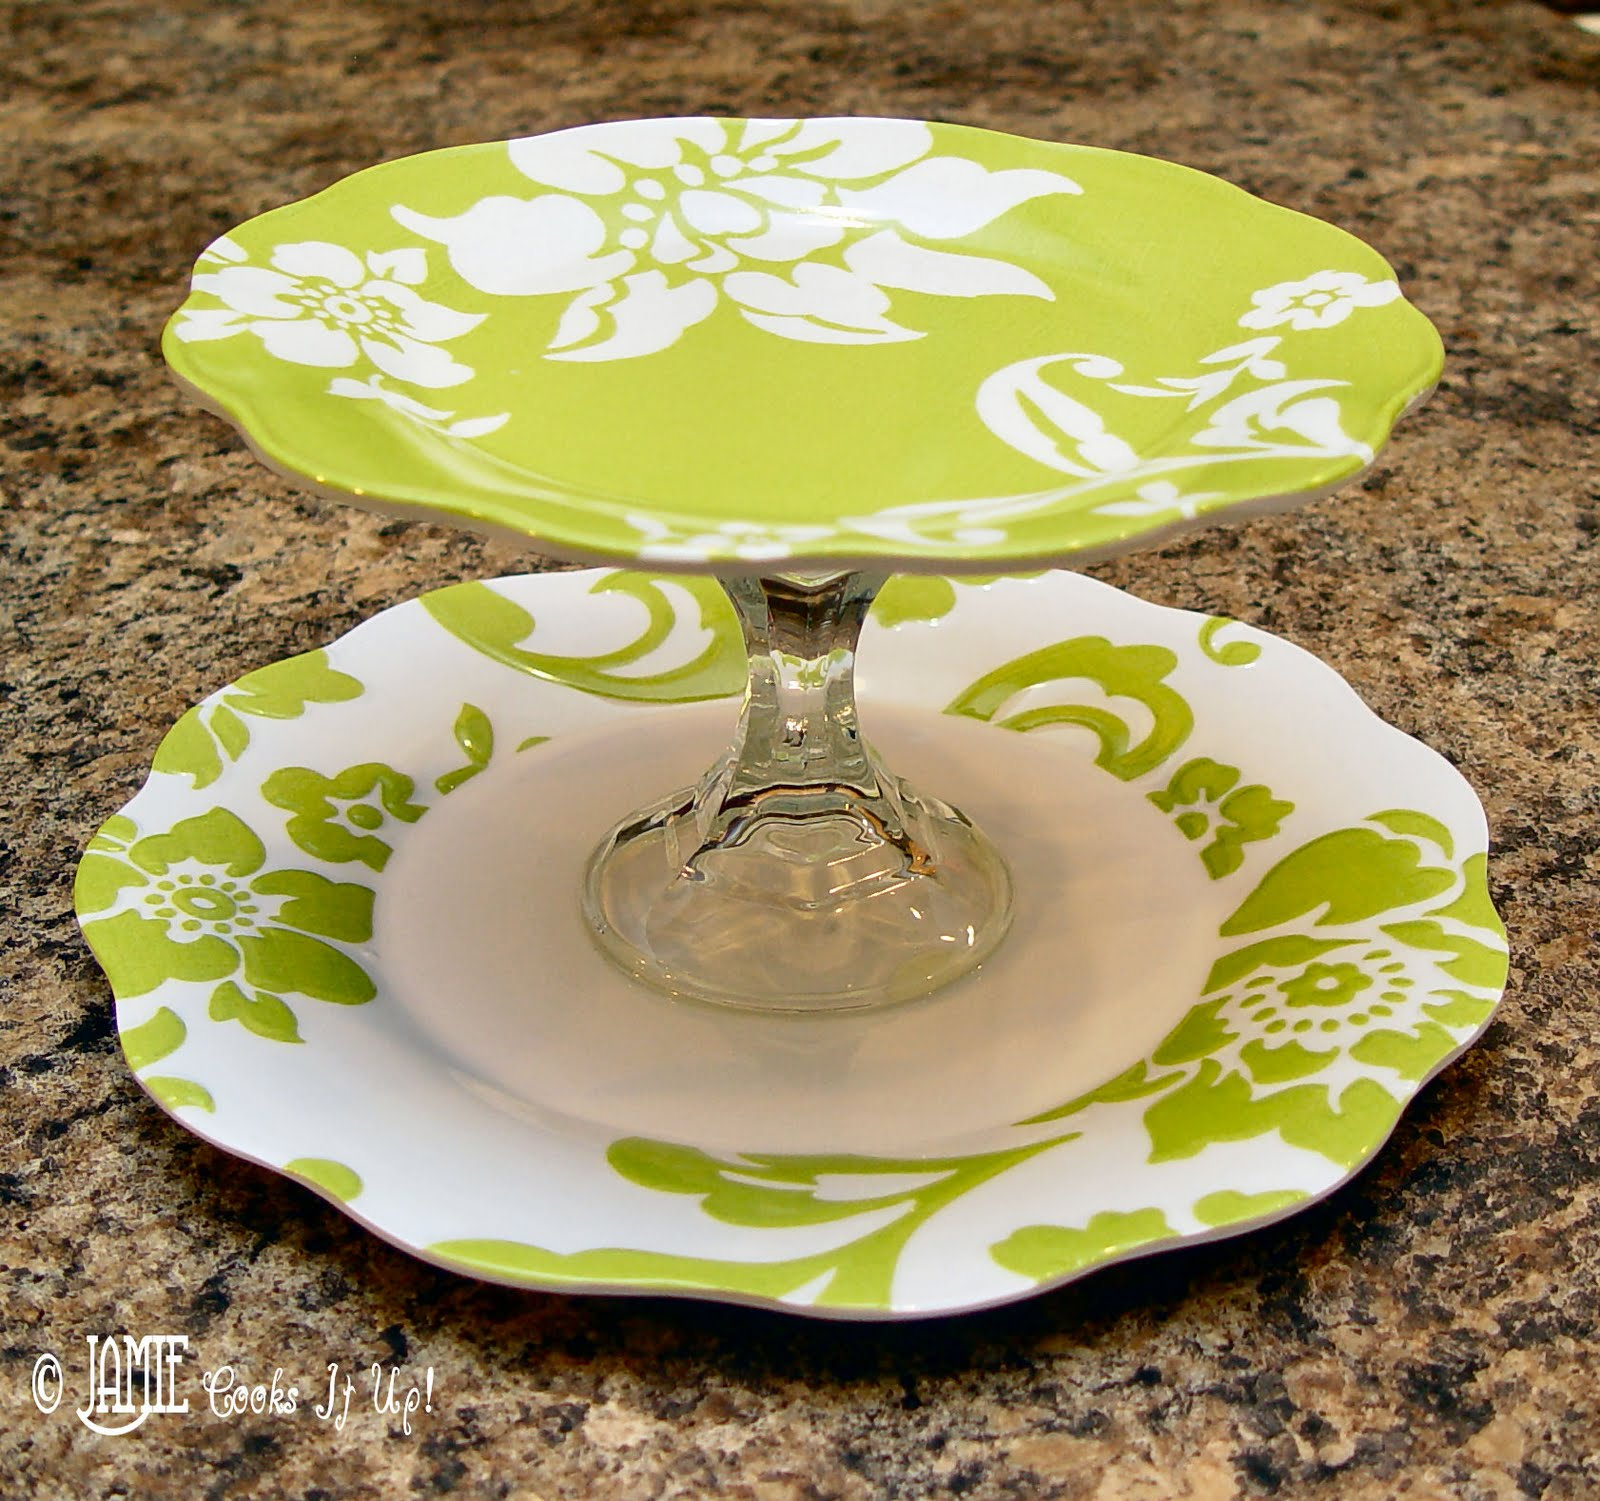 & How to make your own Tiered Serving Platter for ***CHEAP***